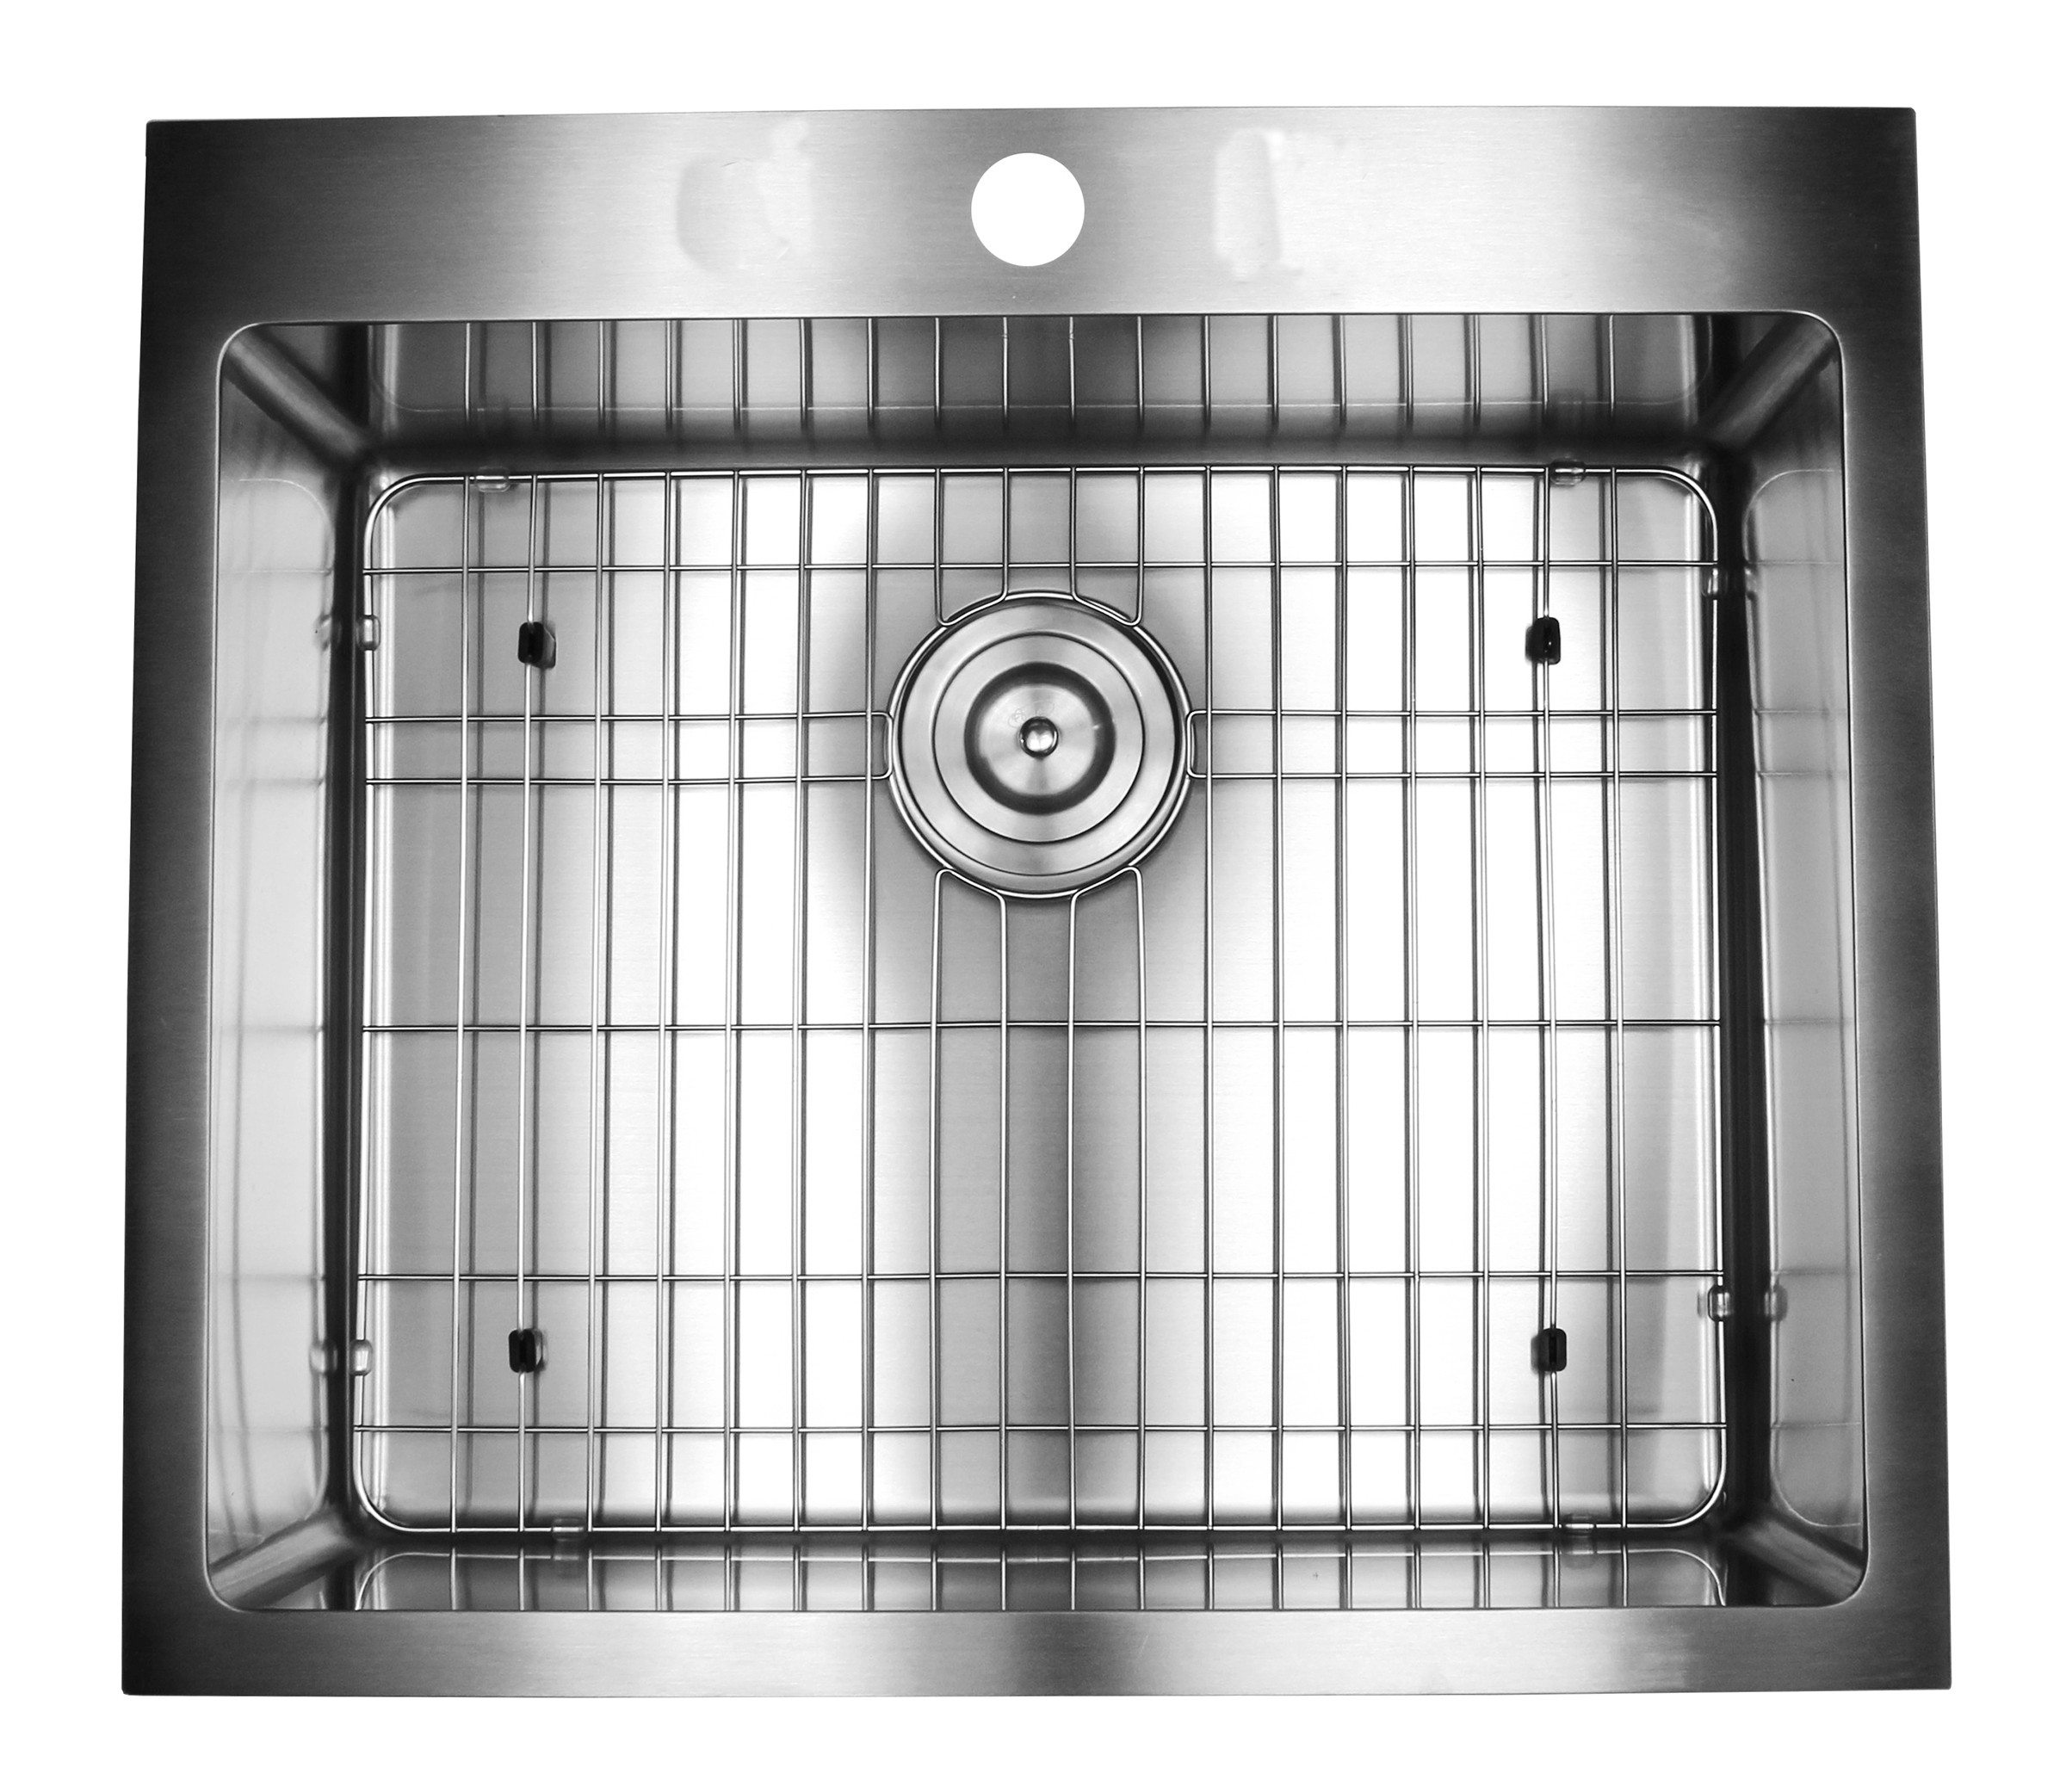 Kitchen Island With Sink Dimensions: 25 Inch Drop-In / Top-Mount Stainless Steel Single Bowl Kitchen Island / Bar Sink Premium